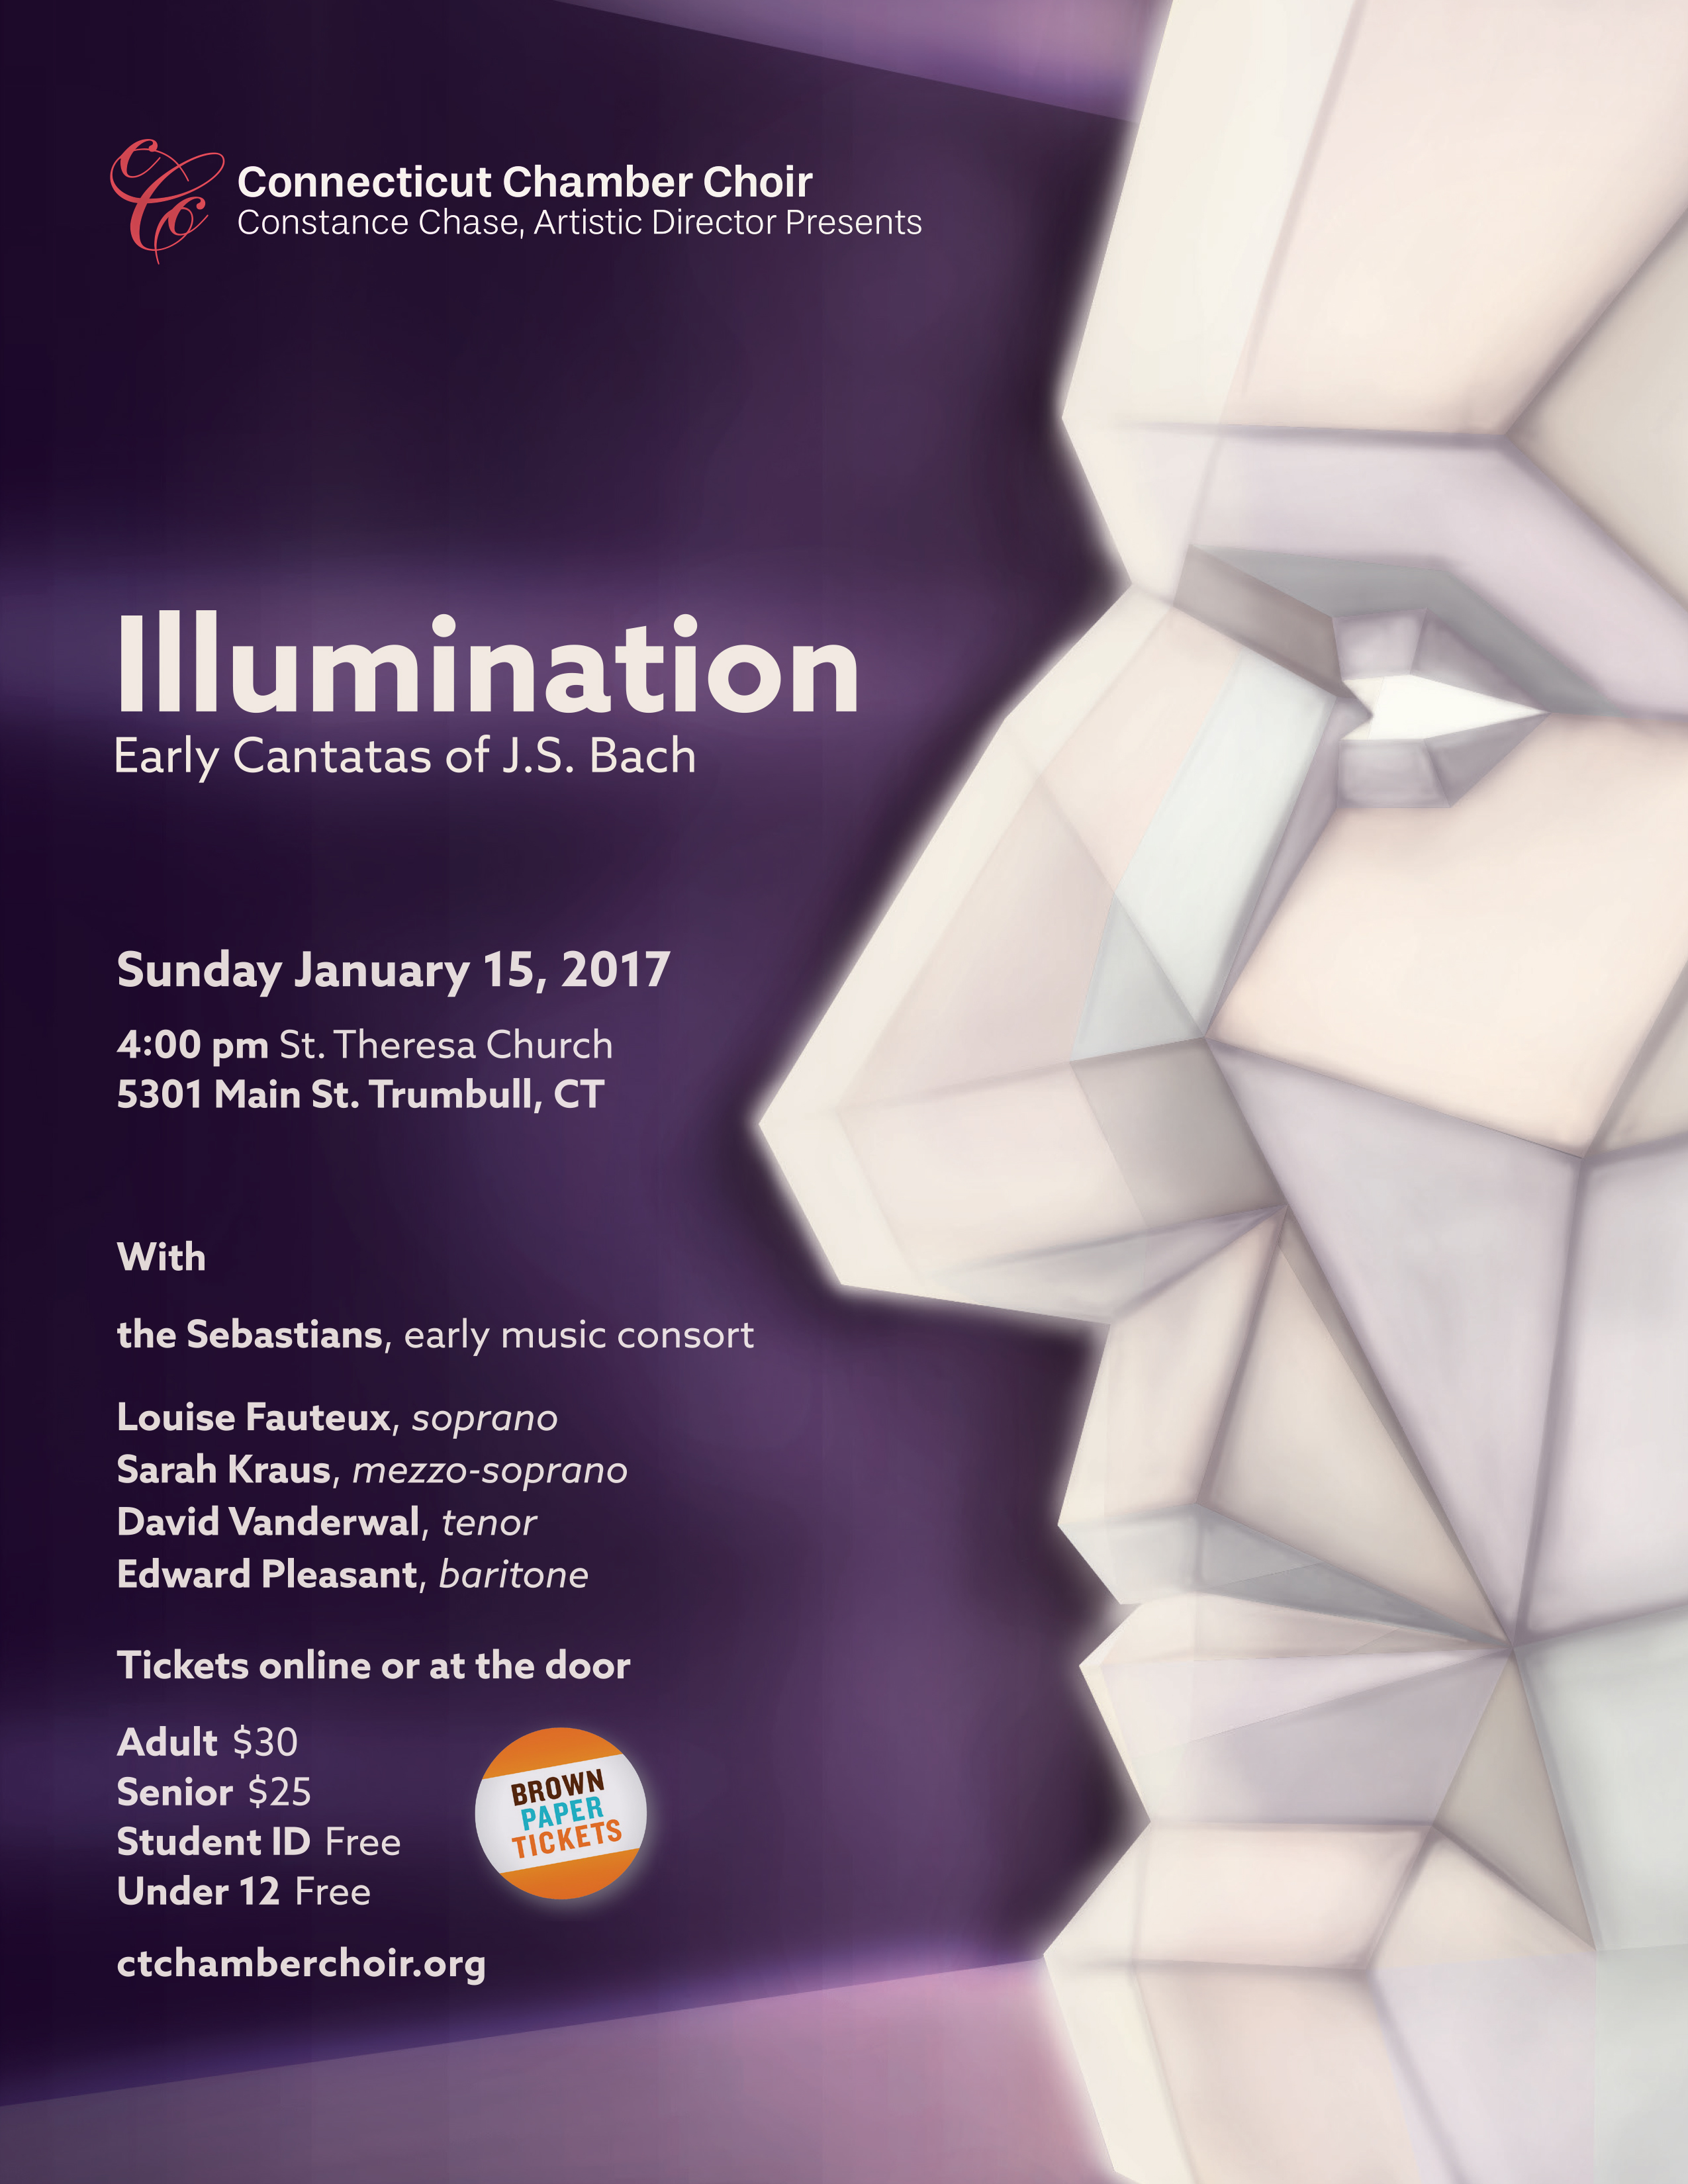 Illumination: Early Cantatas of J.S. Bach